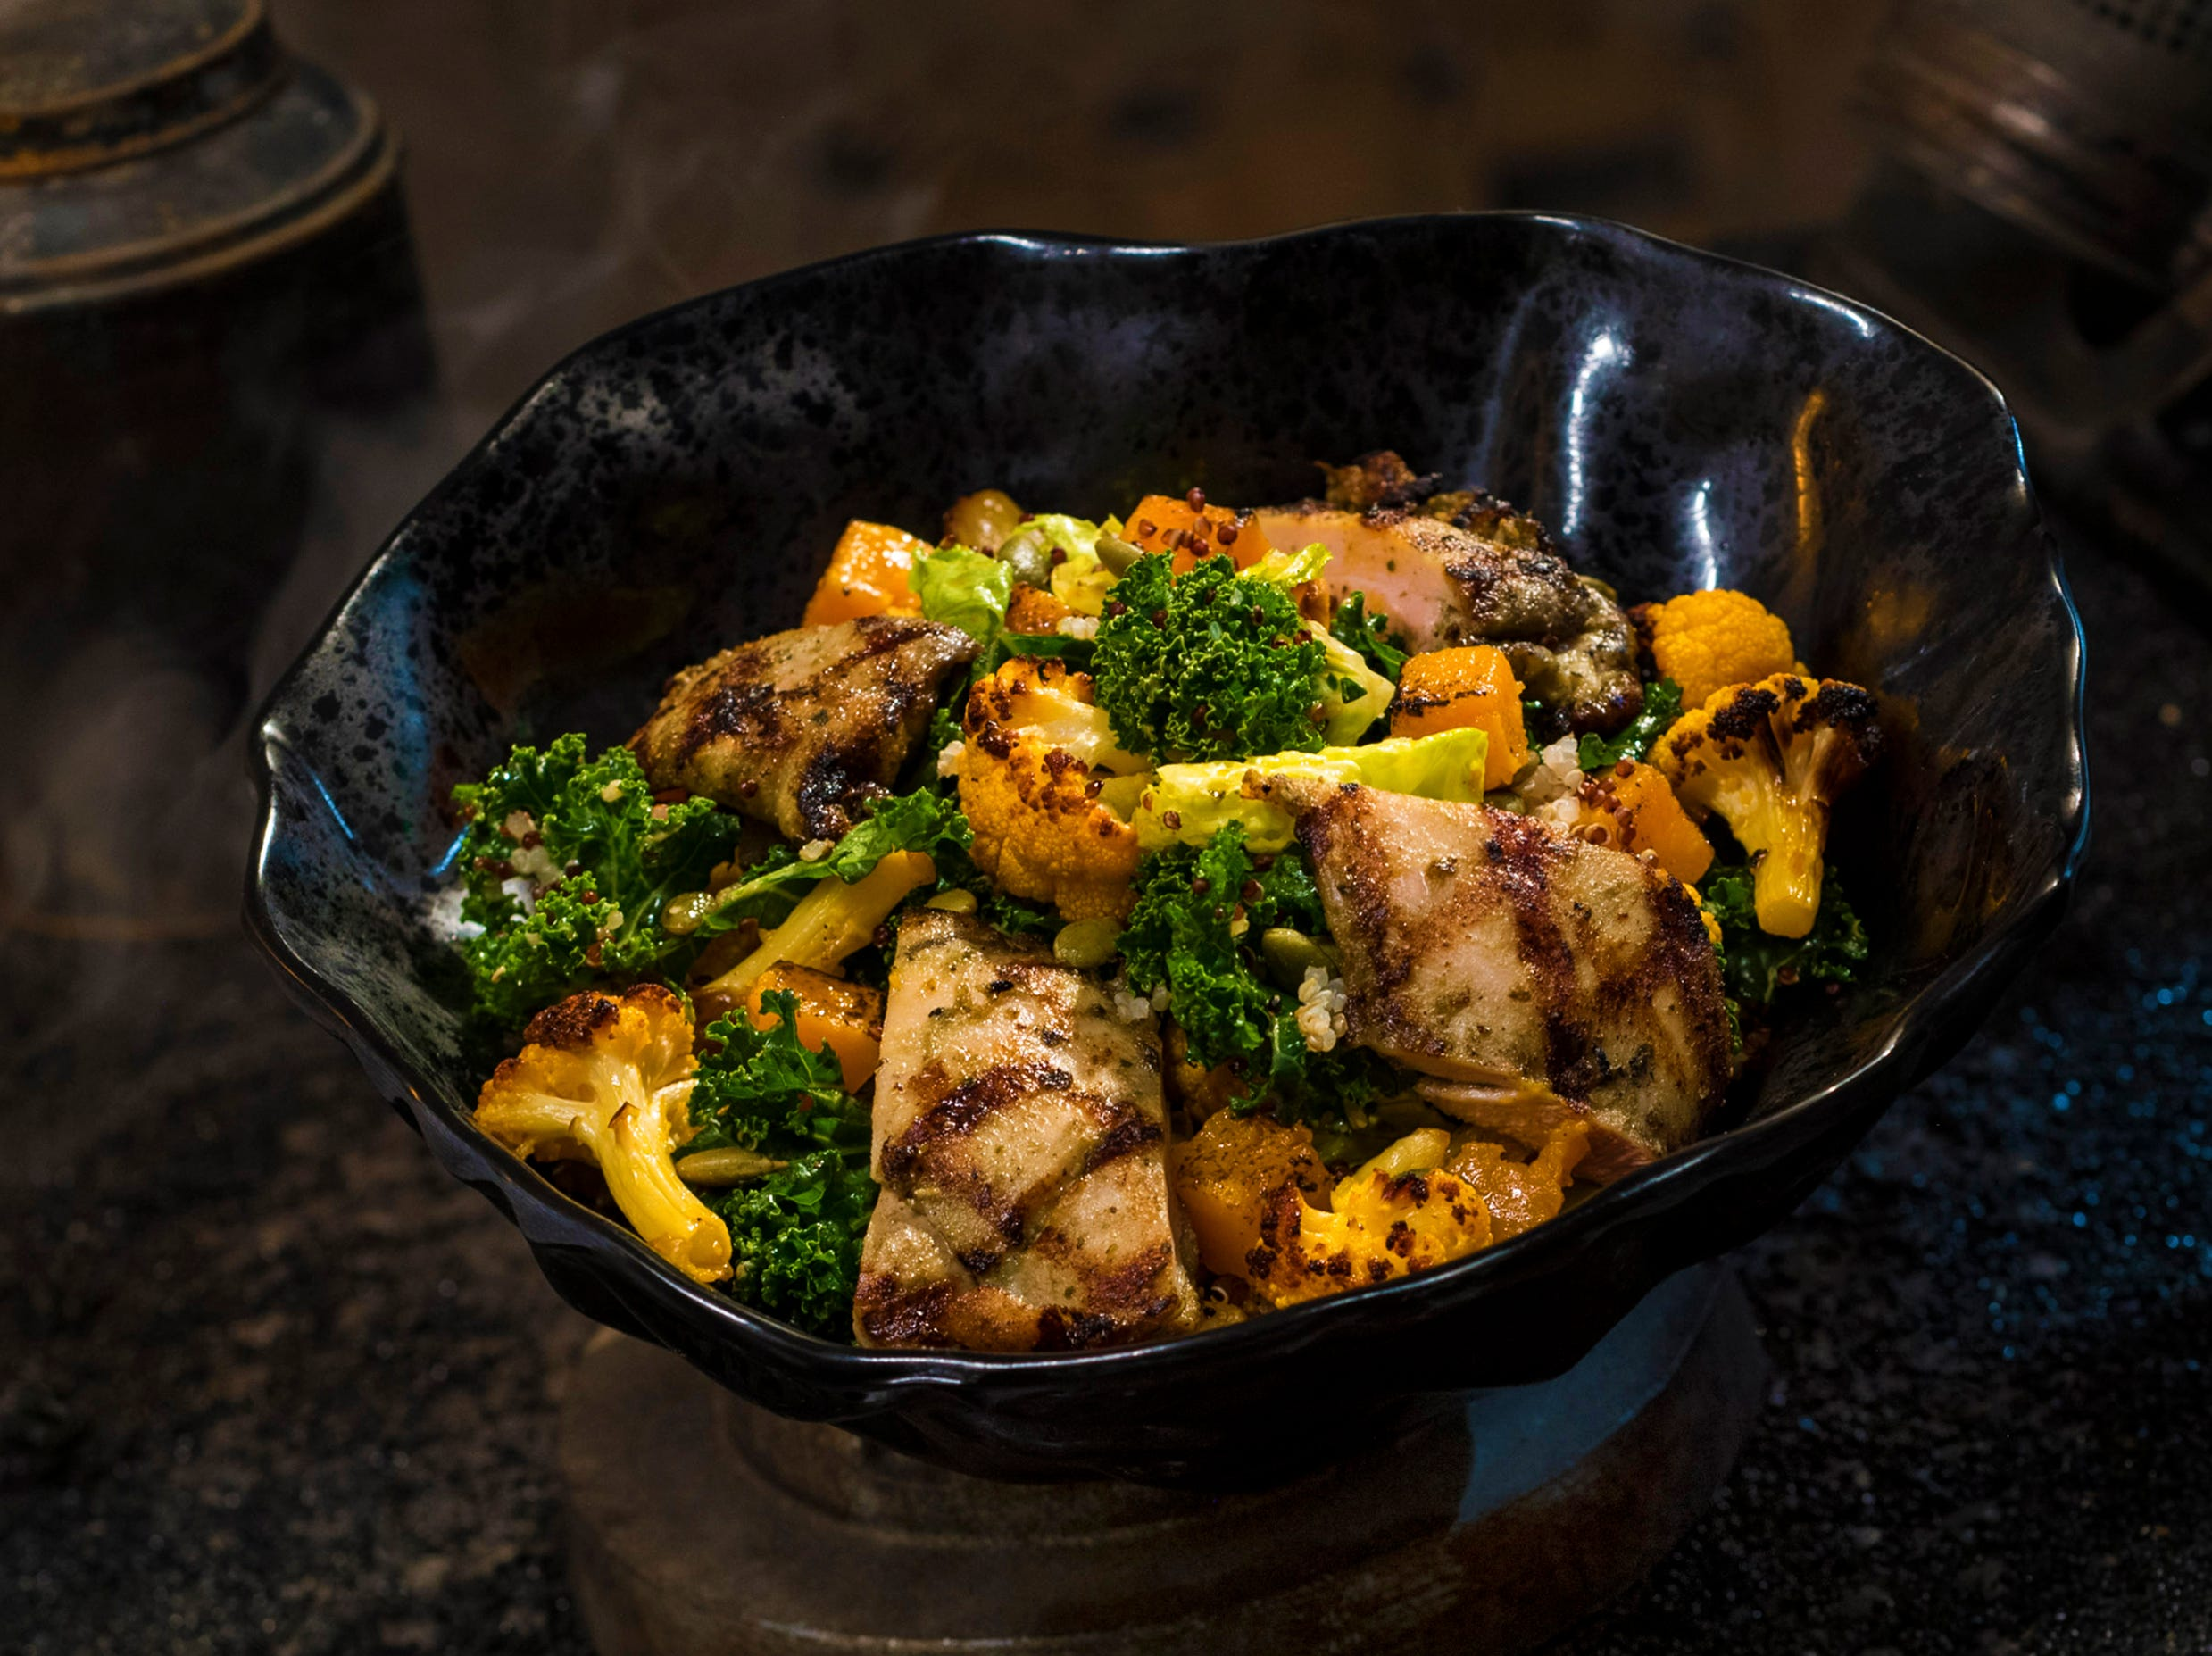 The Oven-roasted Tip Yip, found at Docking Bay 7 Food and Cargo inside Star Wars: Galaxy's Edge, features roasted chicken with mixed greens, roasted vegetables, quinoa and pumpkin seeds with a creamy green curry ranch dressing.